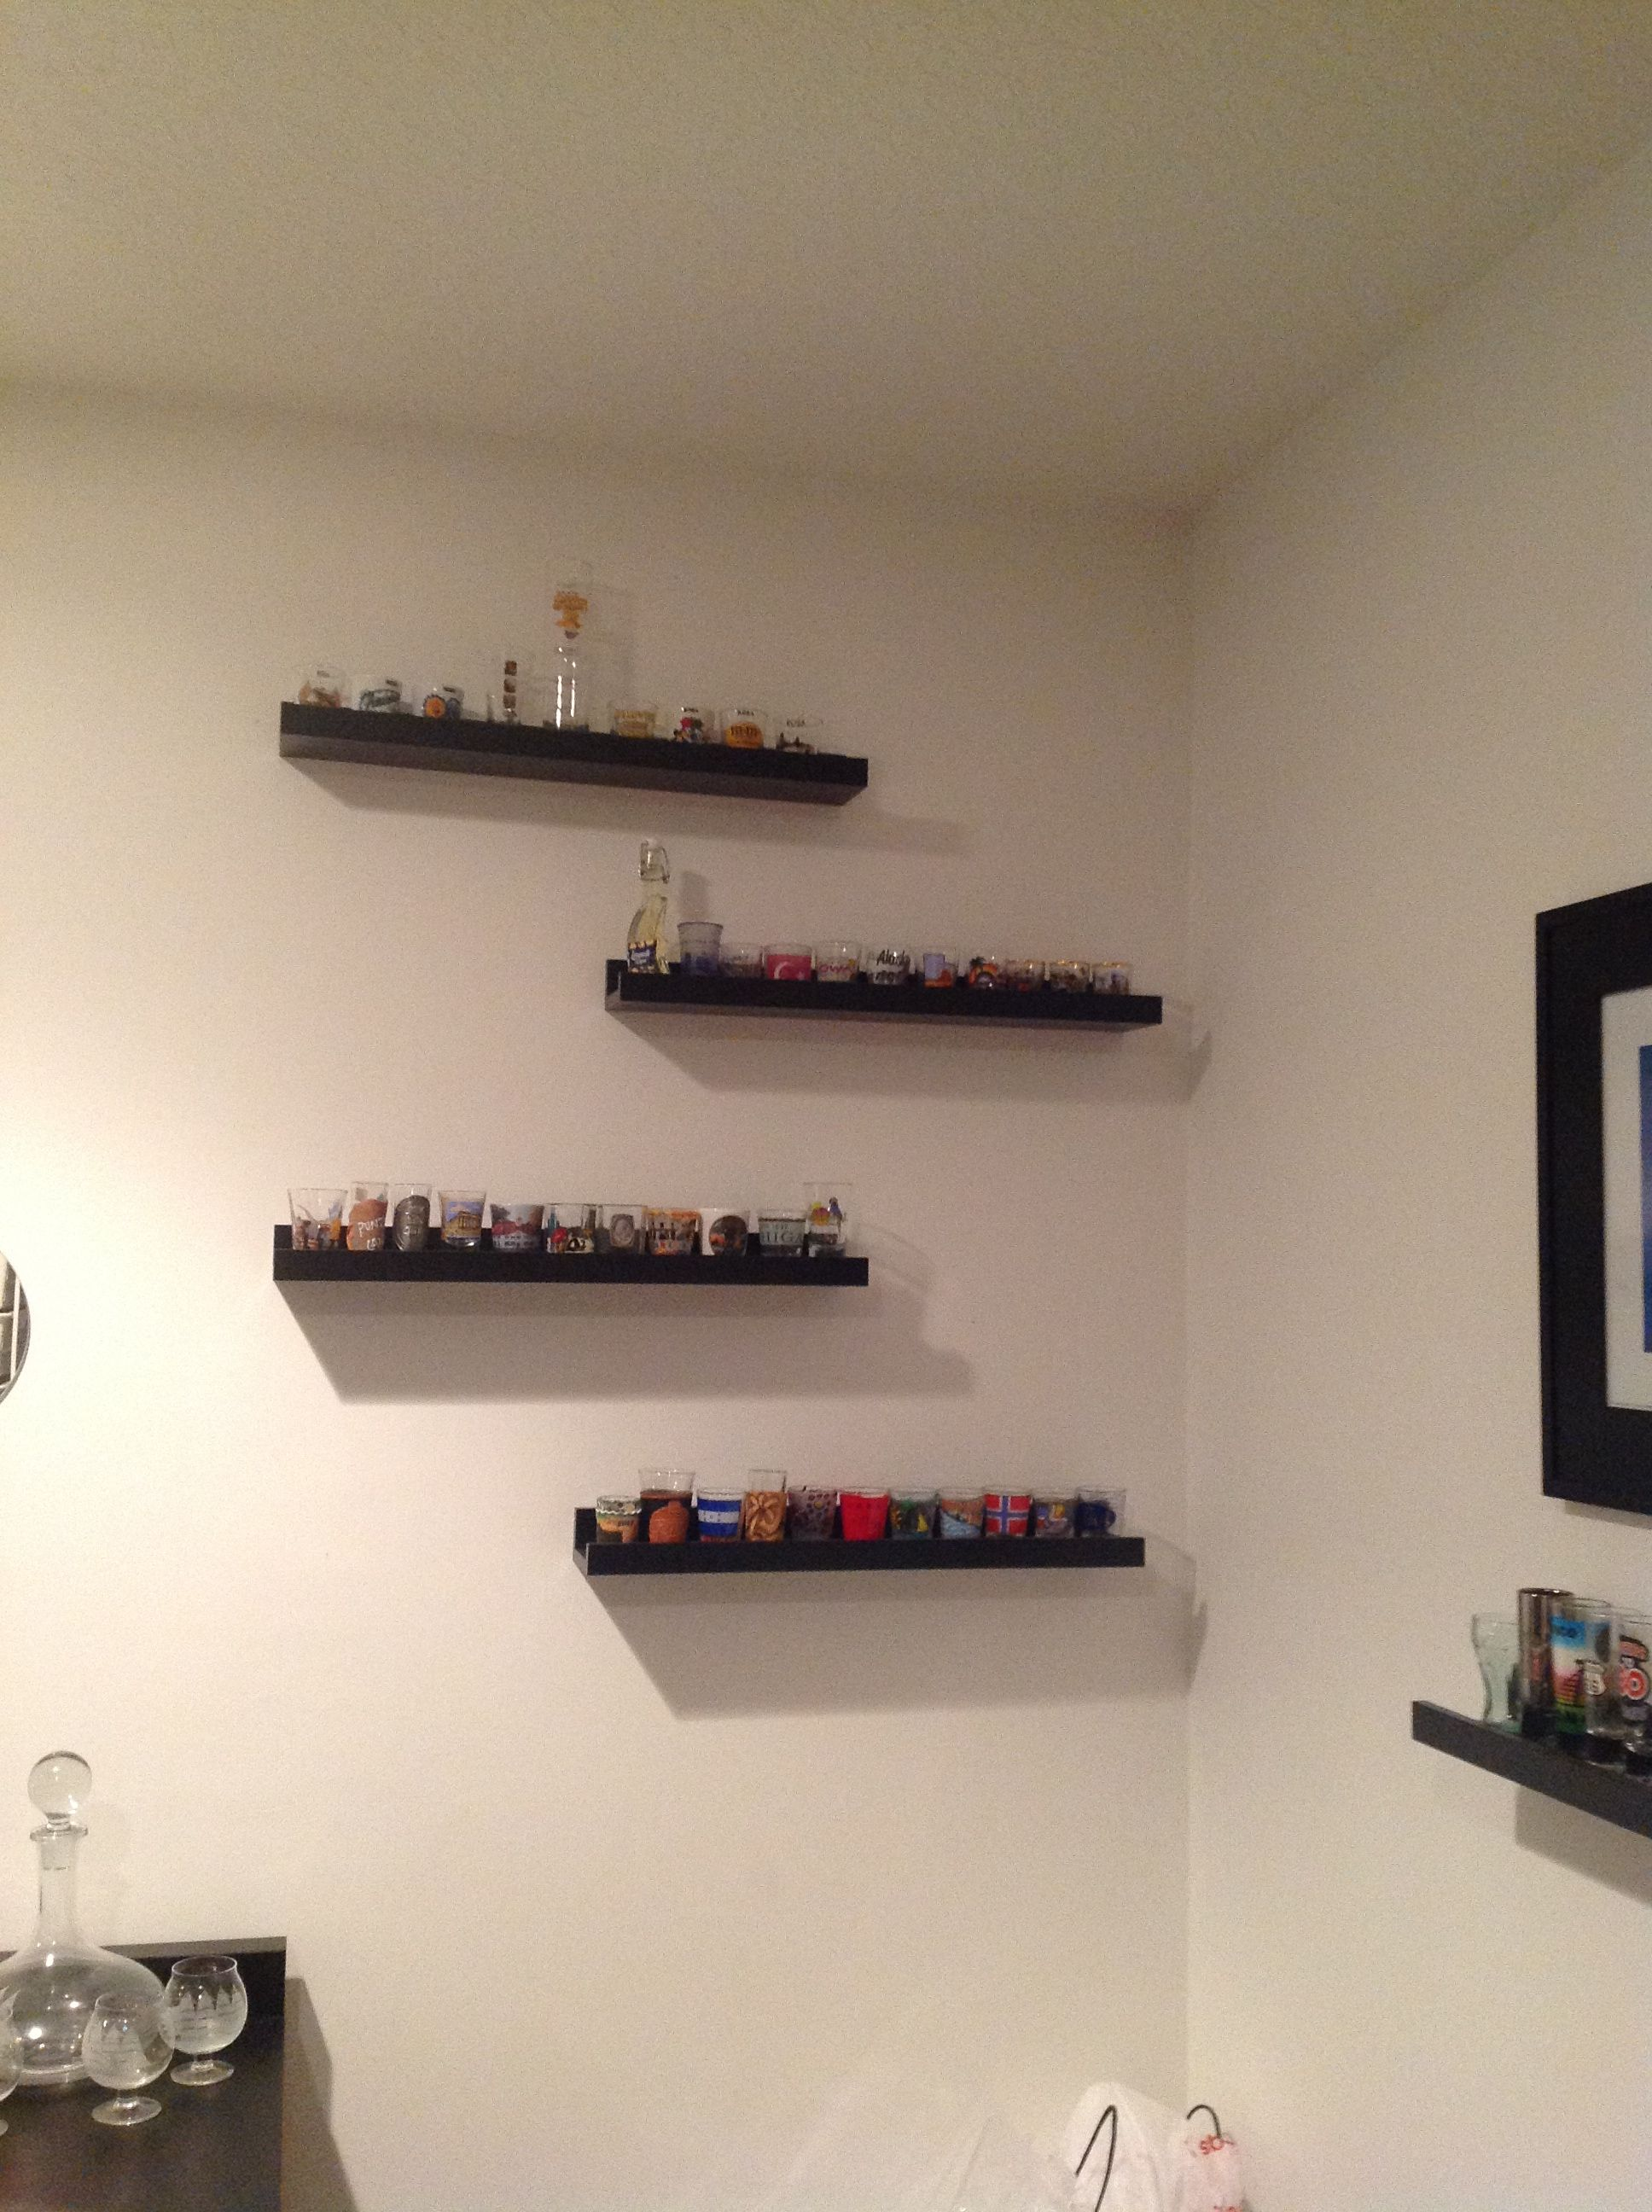 Shelves found in Ikea used for displaying shot glasses